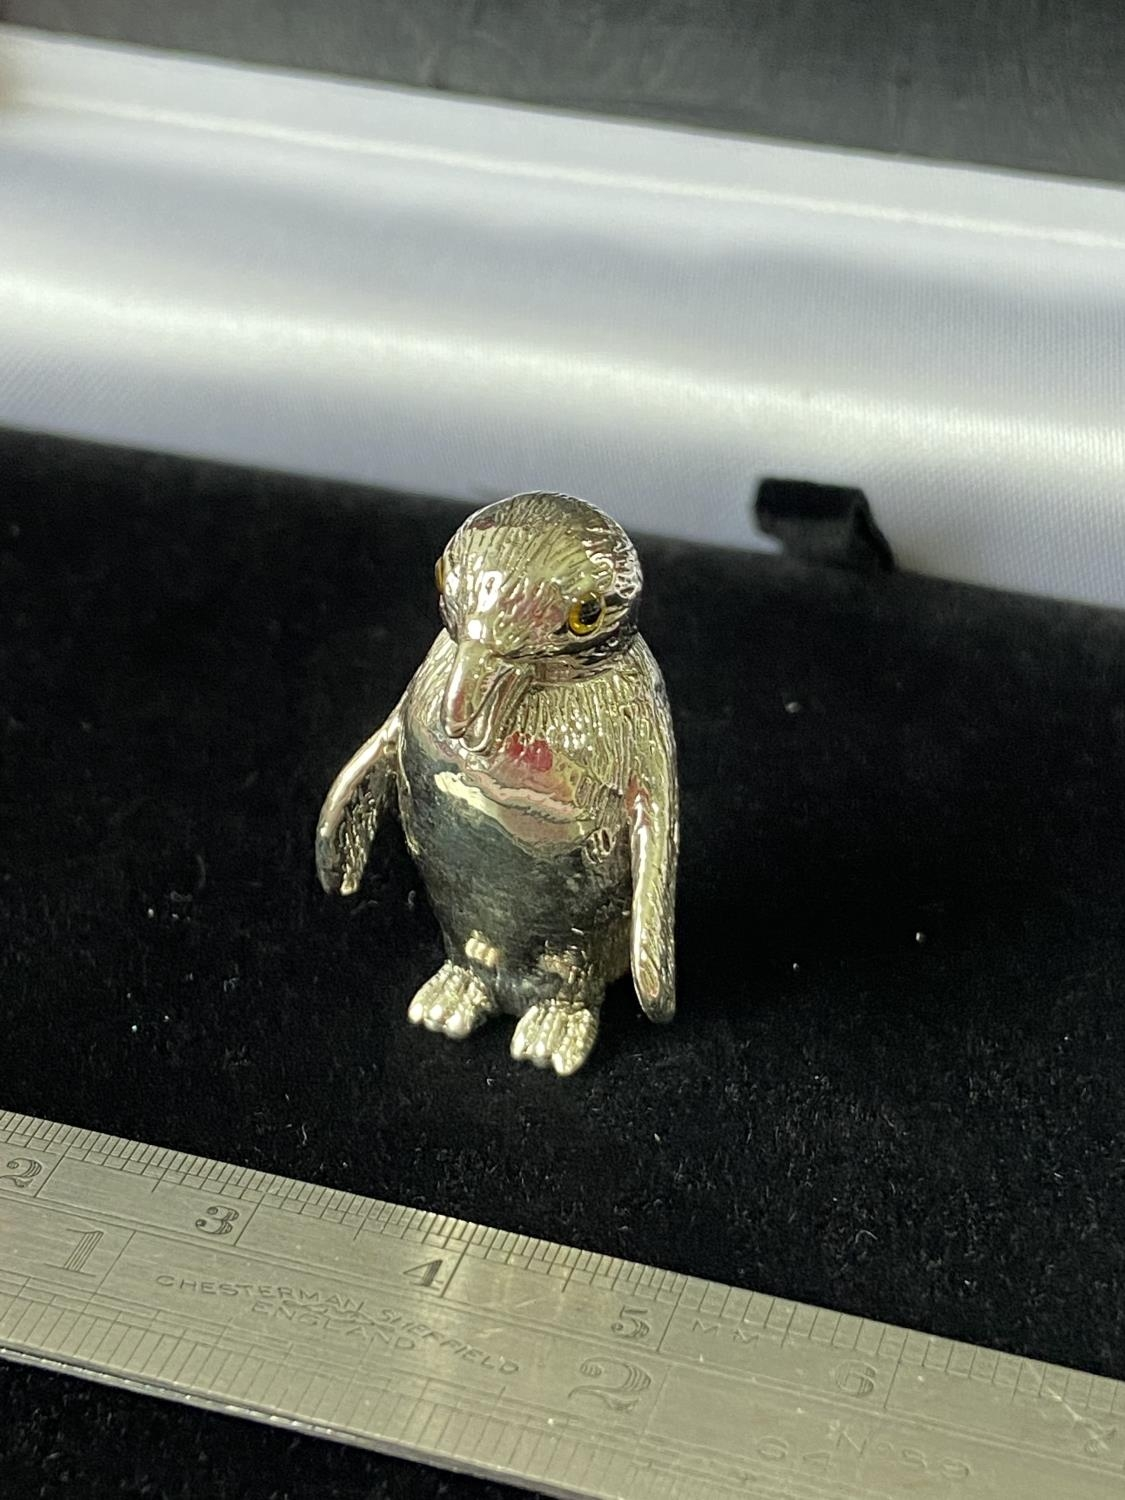 A Silver penguin pincushion with glass eyes. [2.9cm in height]